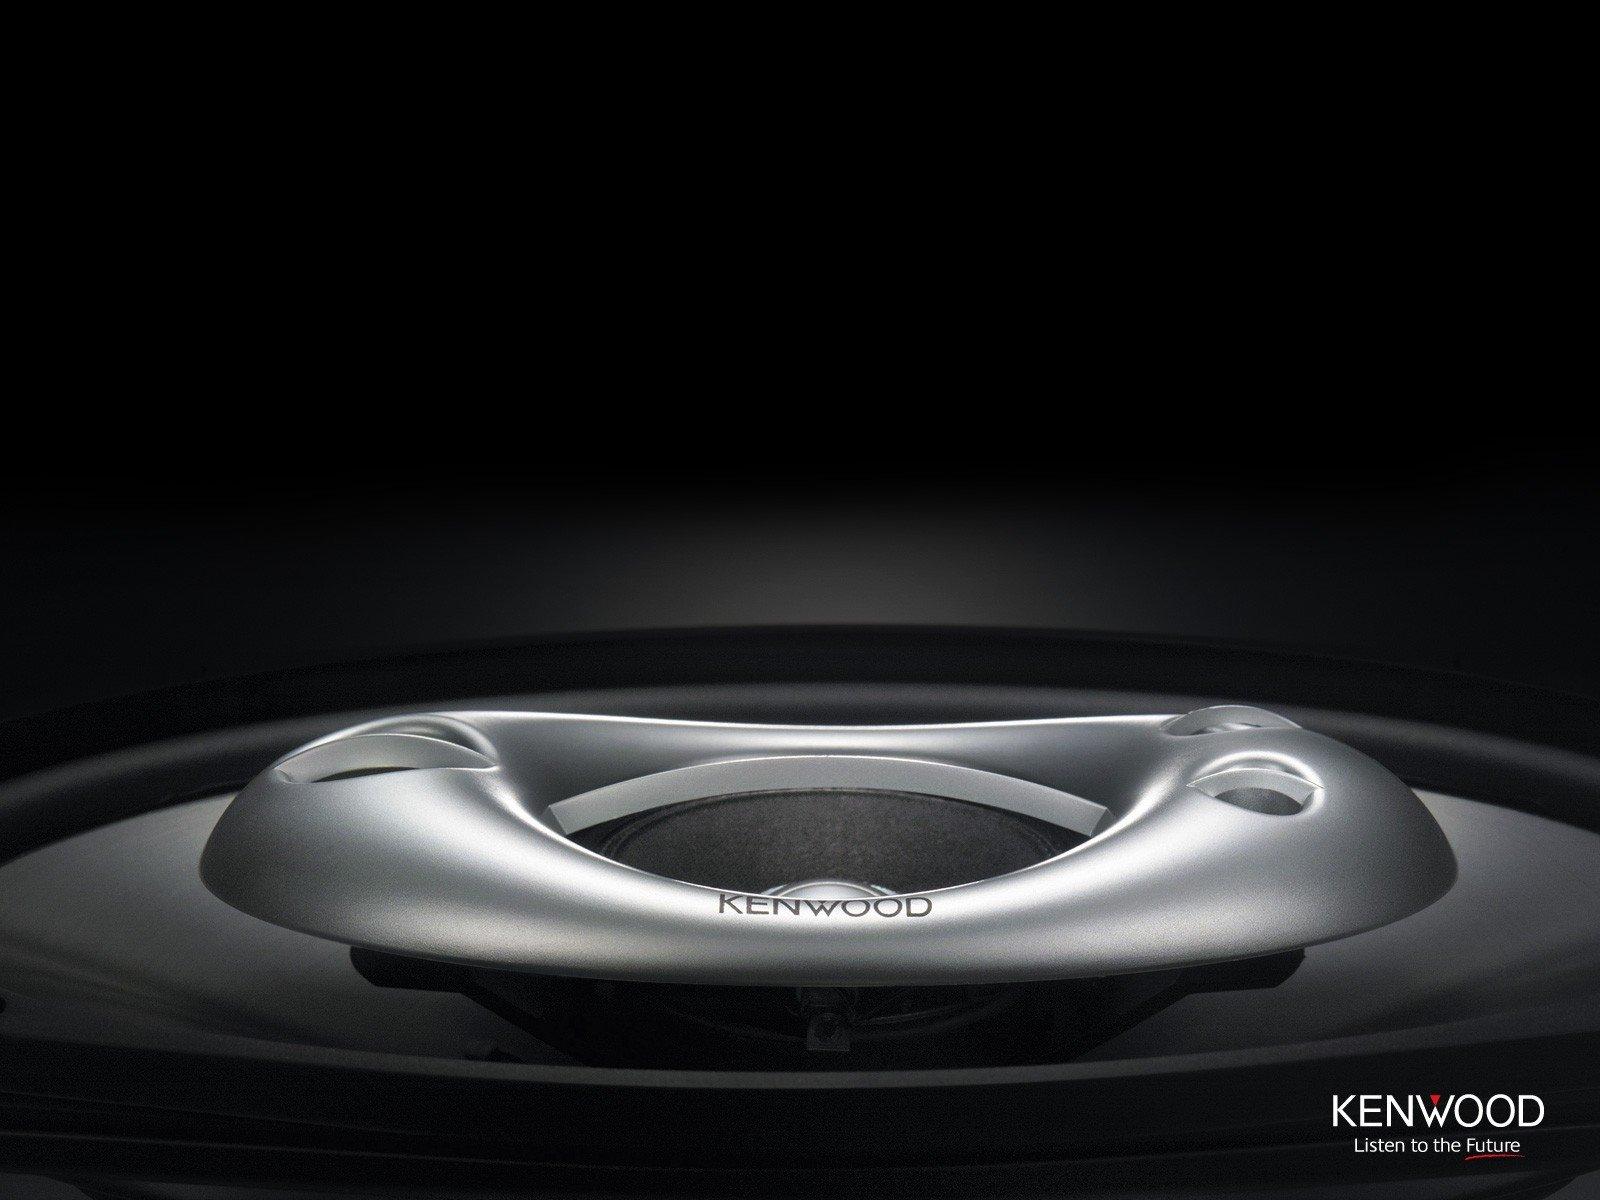 Exceptional Speakers Kenwood Car Audio Wallpaper | 1600x1200 | 283310 | WallpaperUP Idea